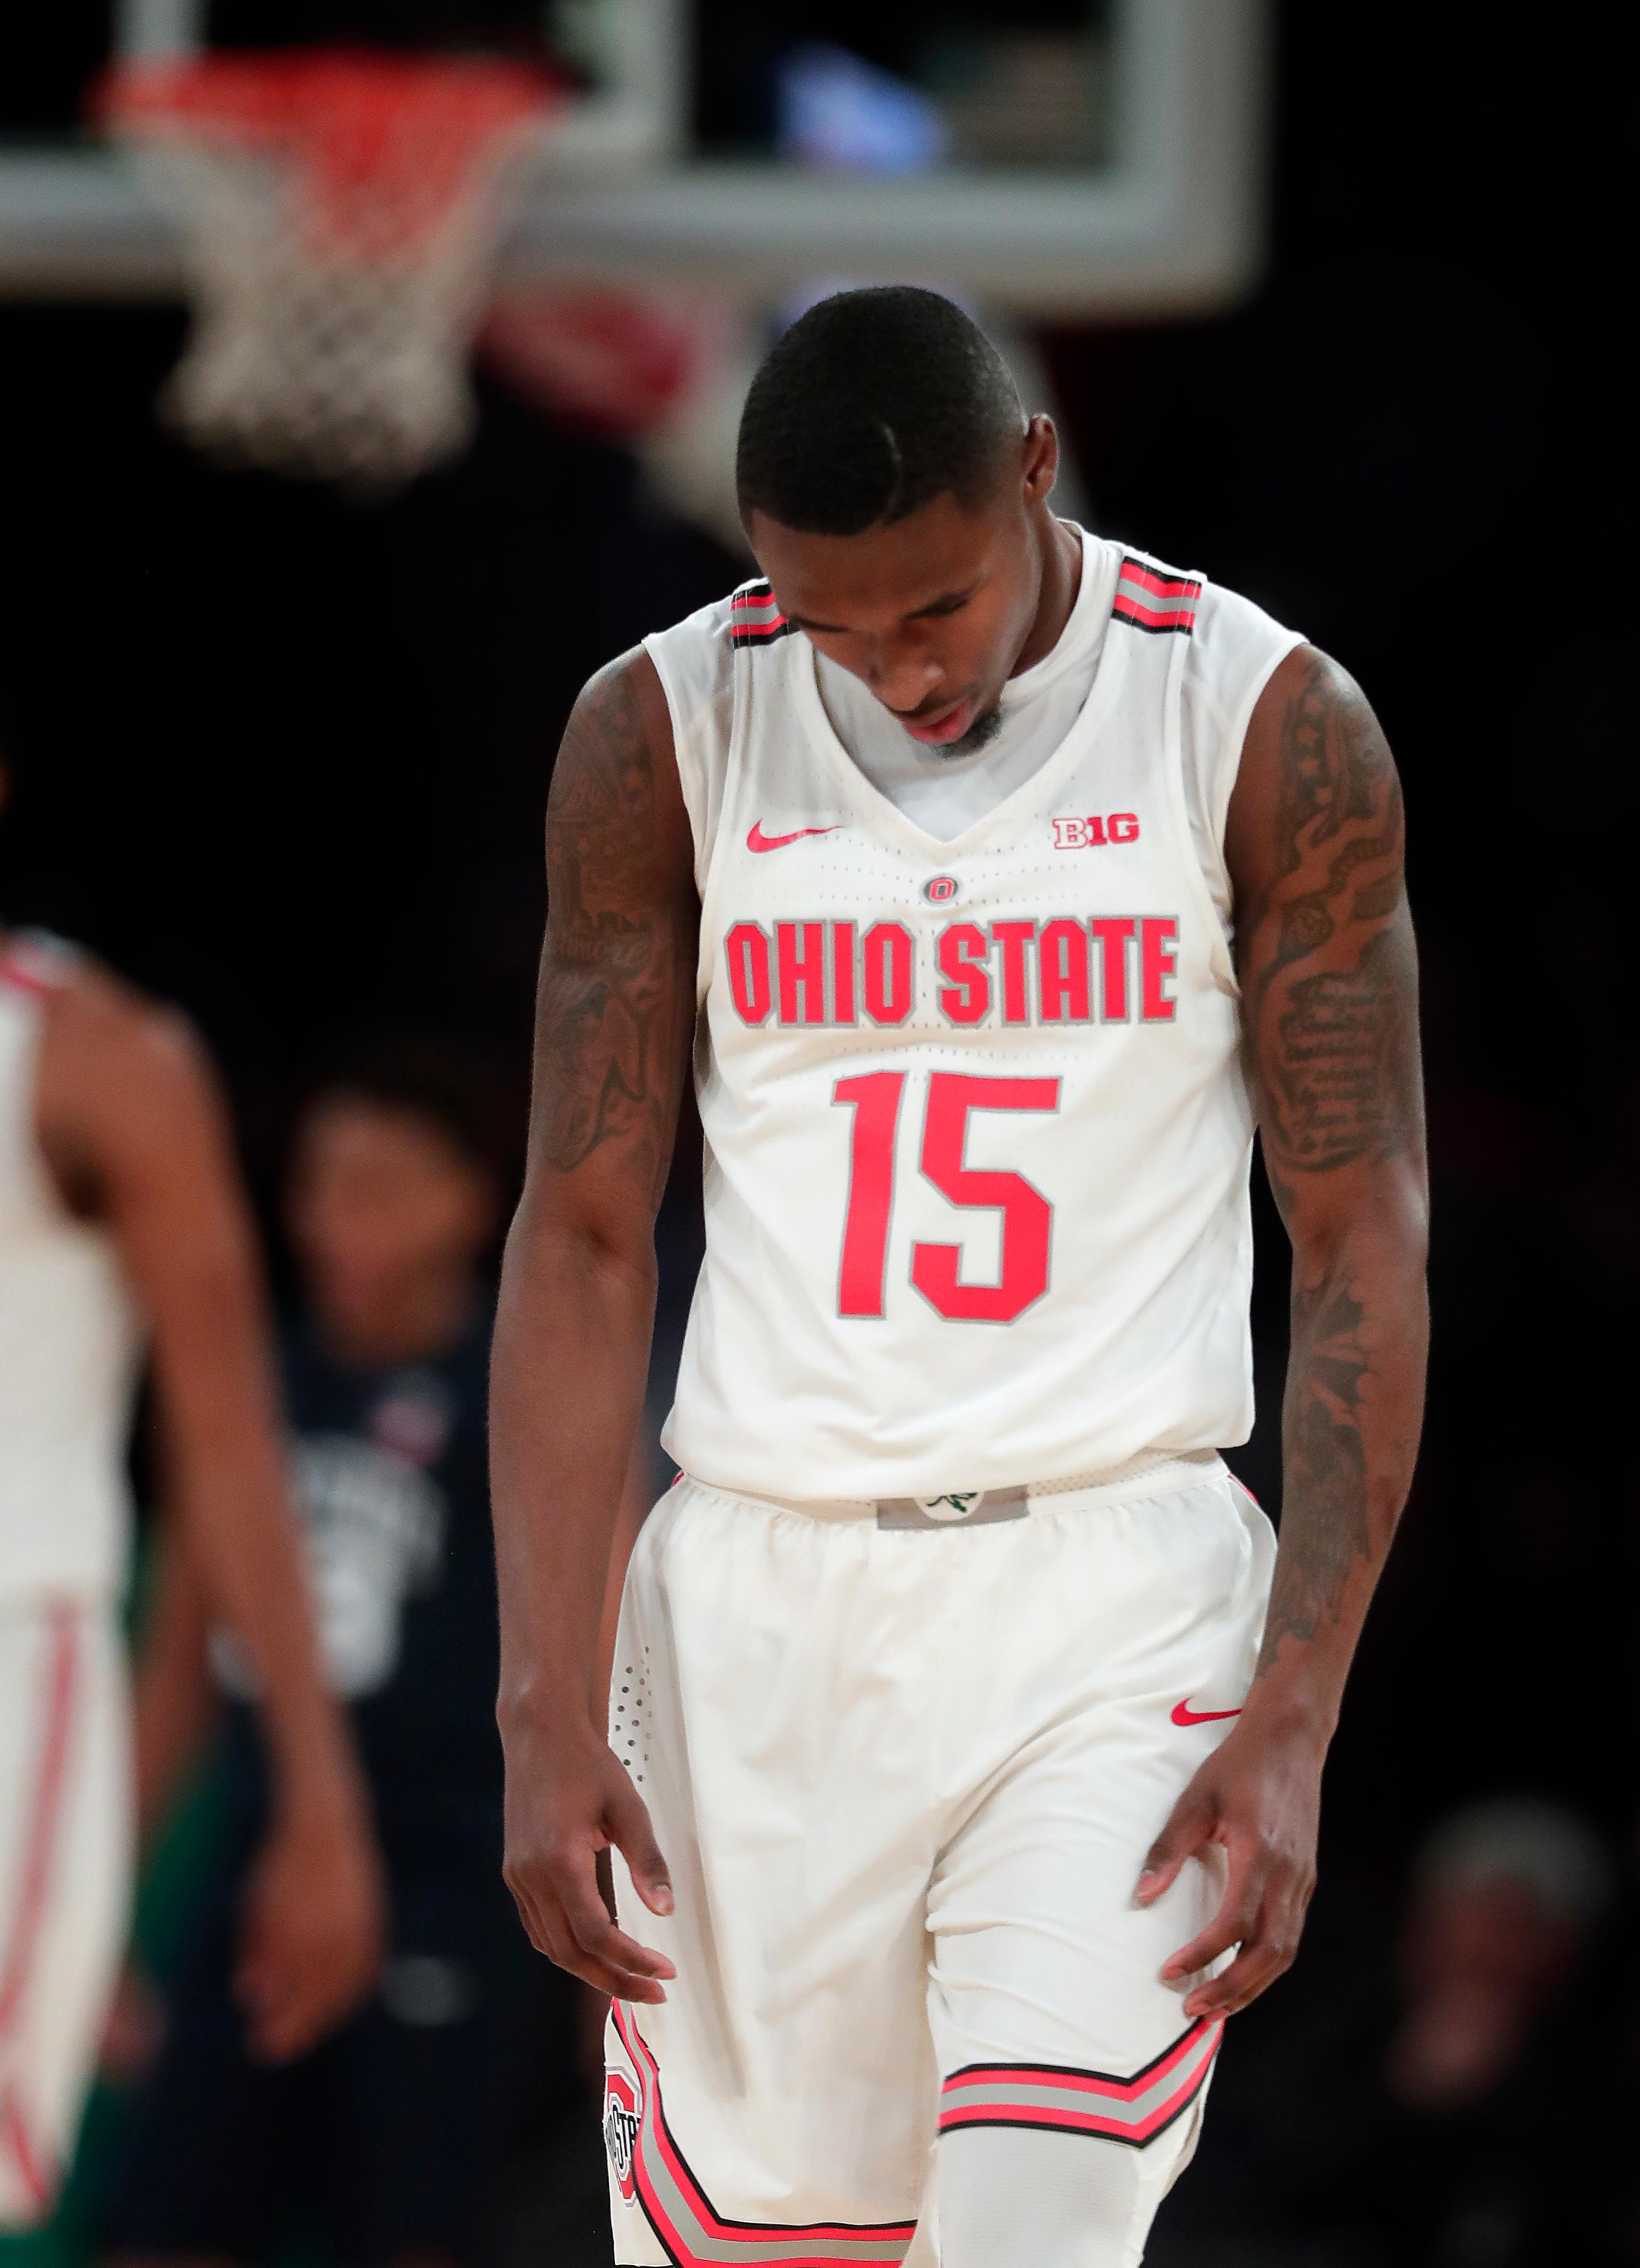 Ohio State guard Kam Williams (15) reacts after a turnover against Penn State during the second half of an NCAA Big Ten Conference tournament college basketball game, Friday, March 2, 2018, in New York. Penn State won 69-68. (AP Photo/Julie Jacobson)